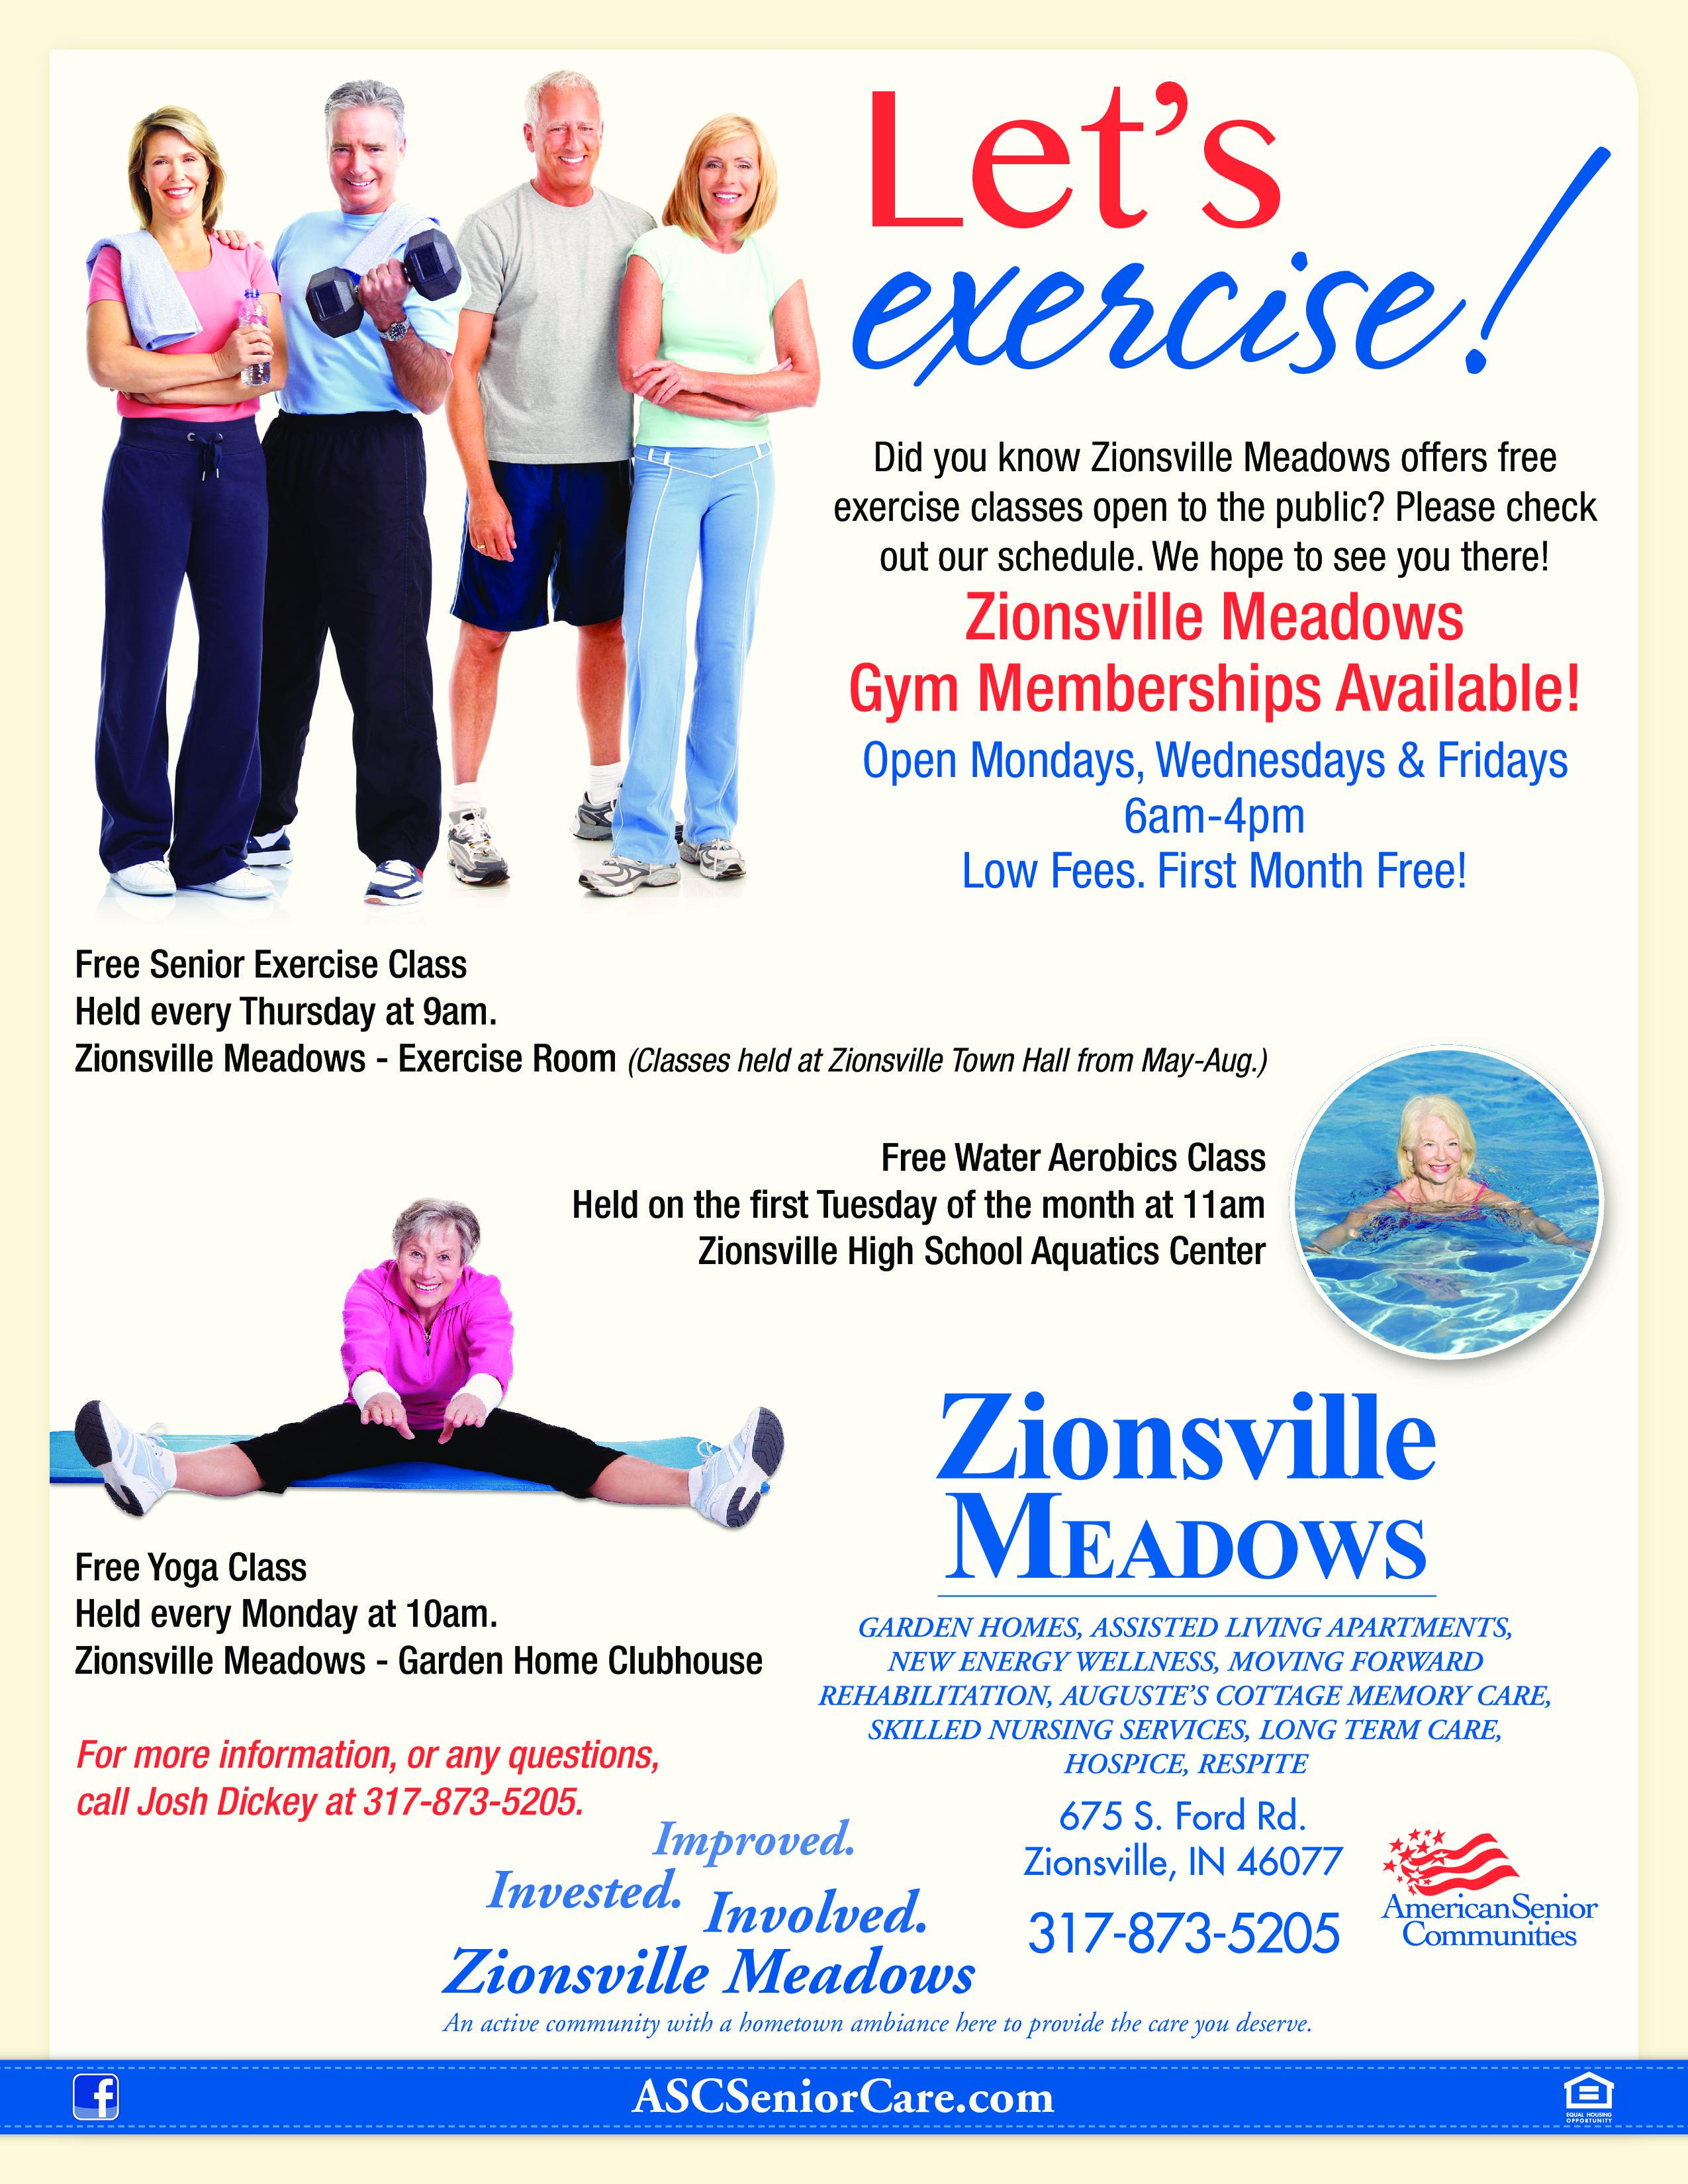 Free Senior Yoga Class at Zionsville Meadows